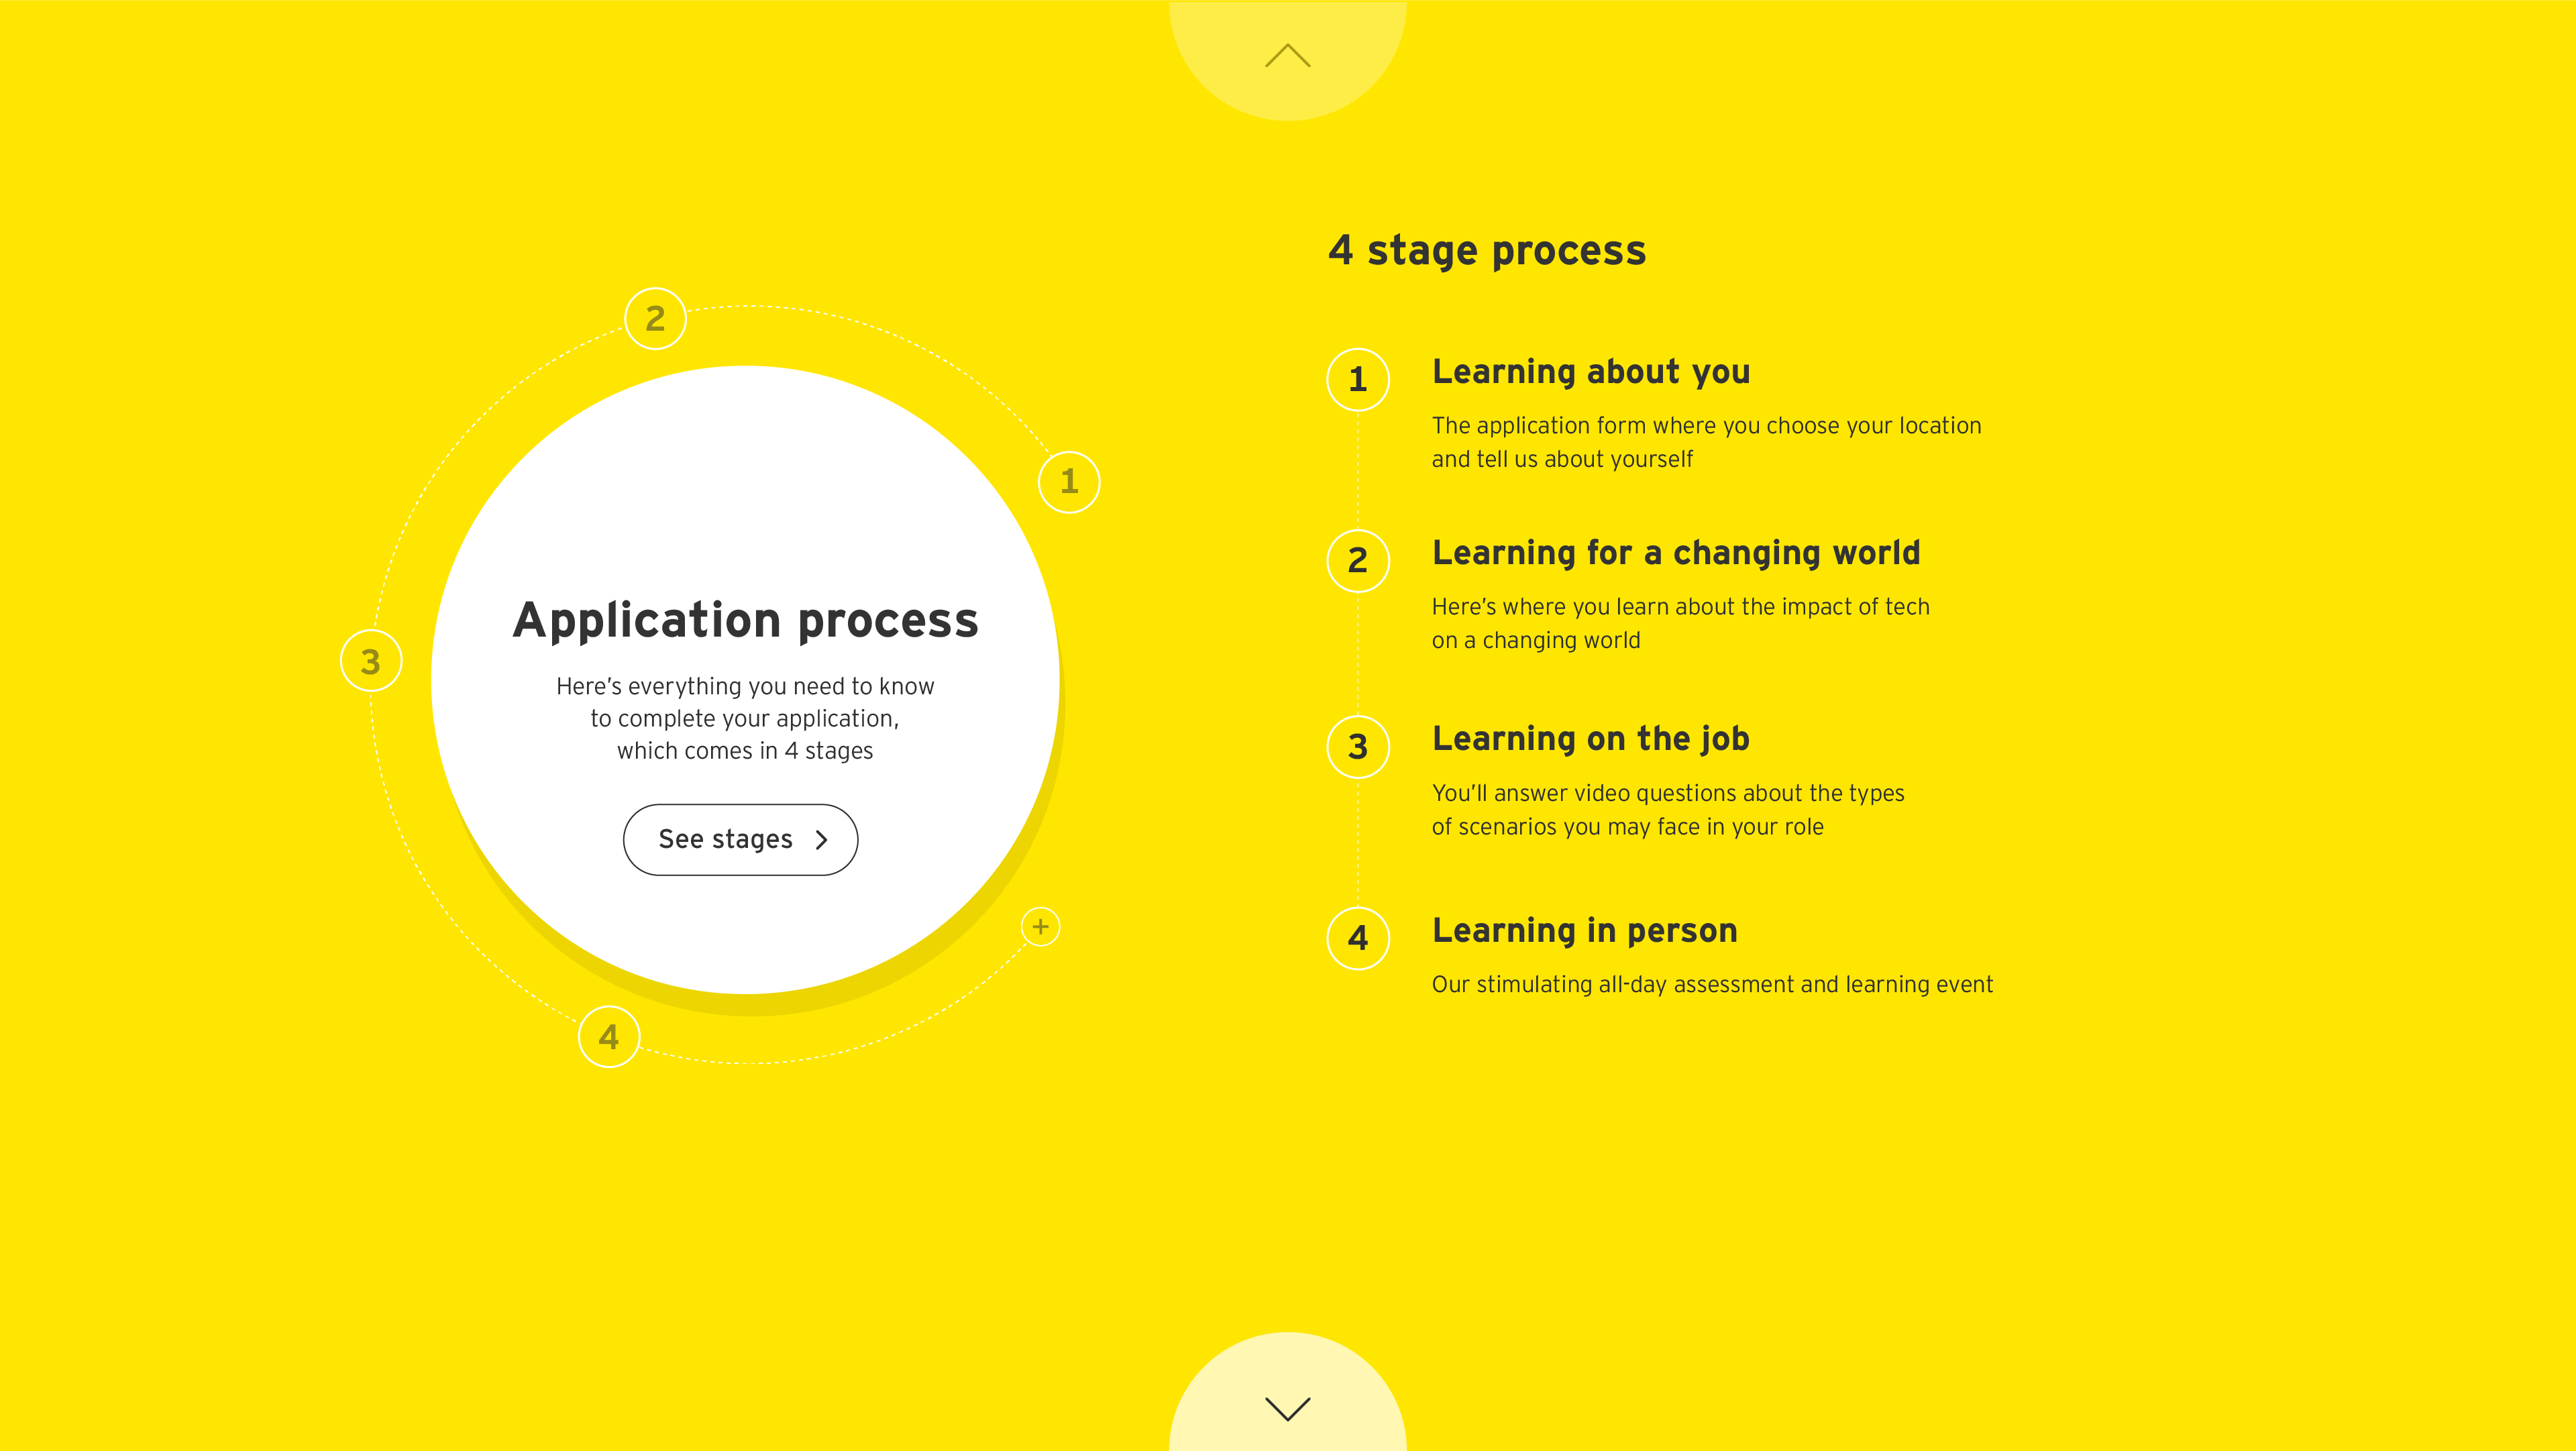 EY - UK Careers Application process at EY